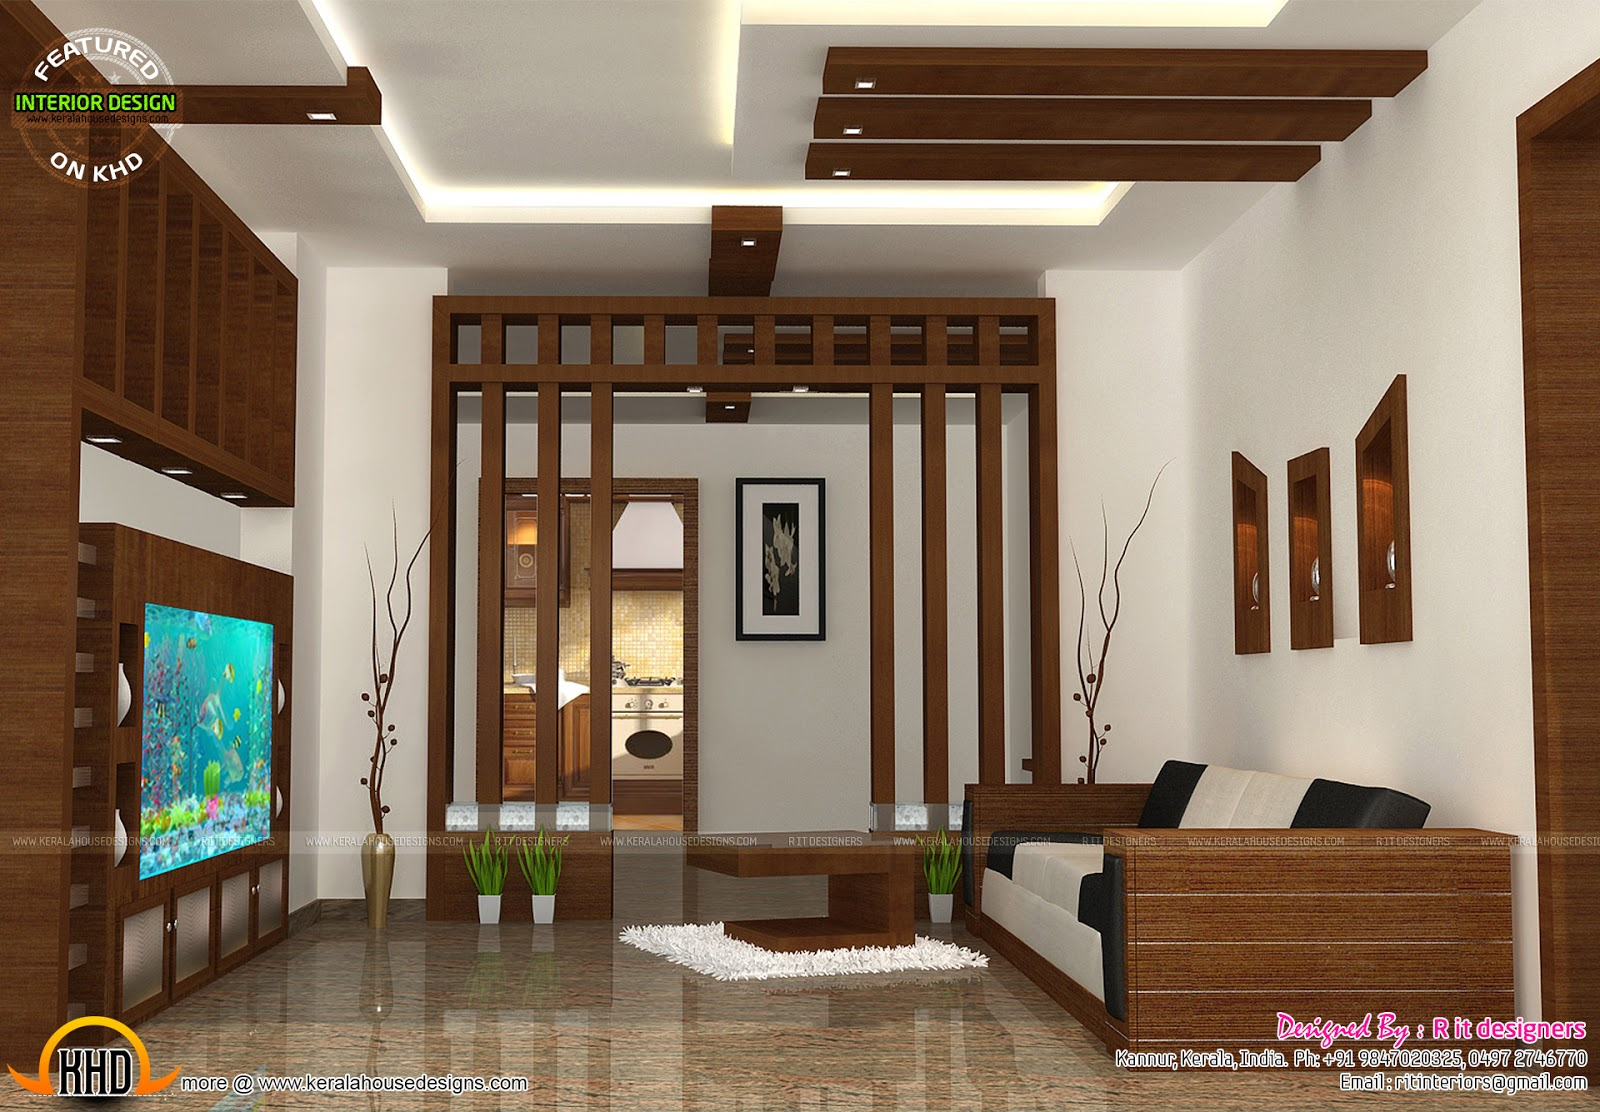 Wooden finish interiors kerala home design and floor plans for Latest home interior designs images